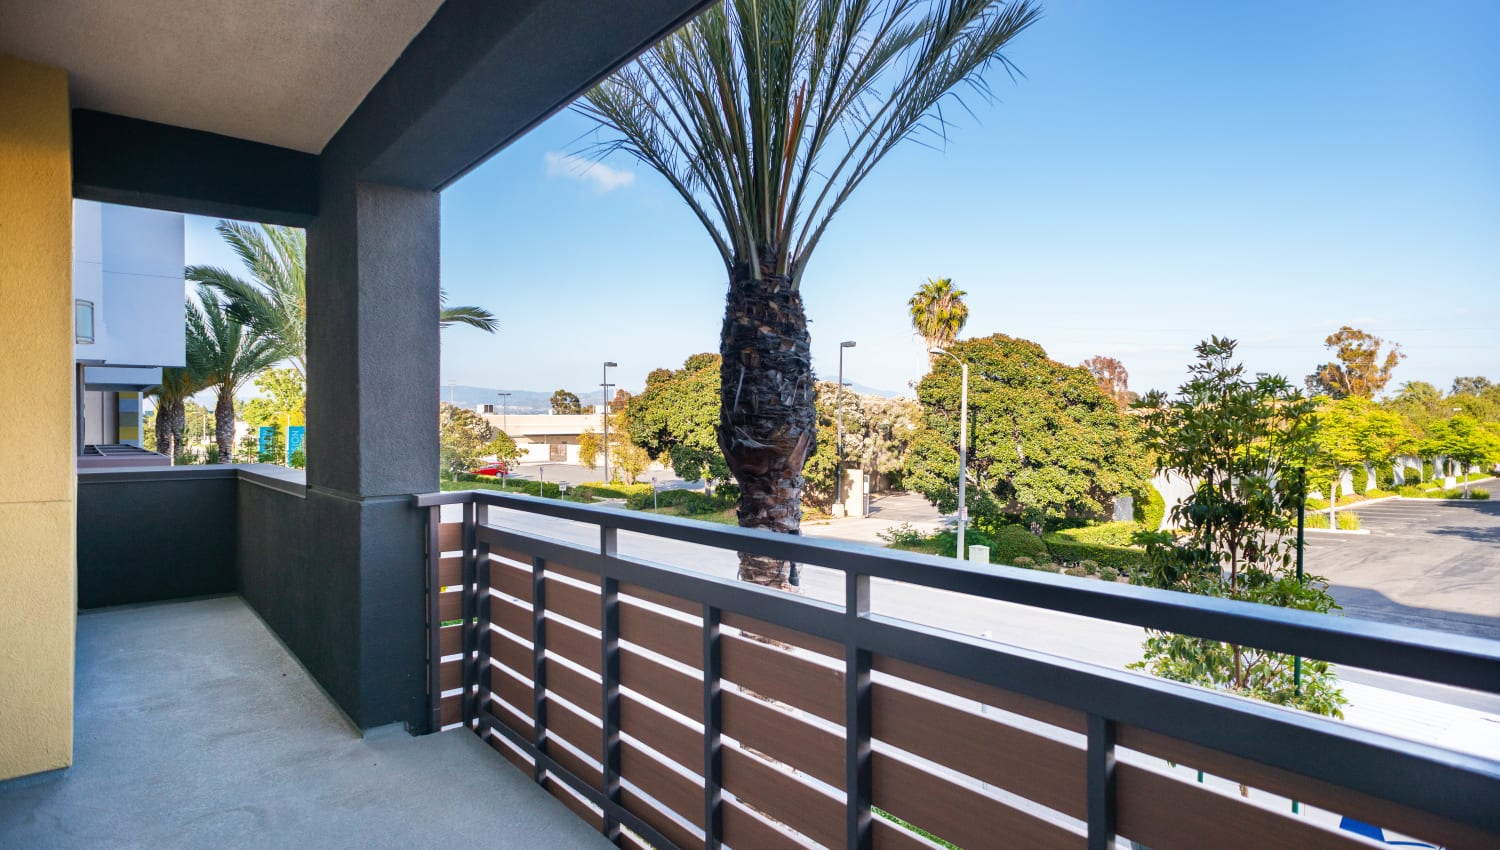 Spacious private balcony outside a model home at Fusion Apartments in Irvine, California